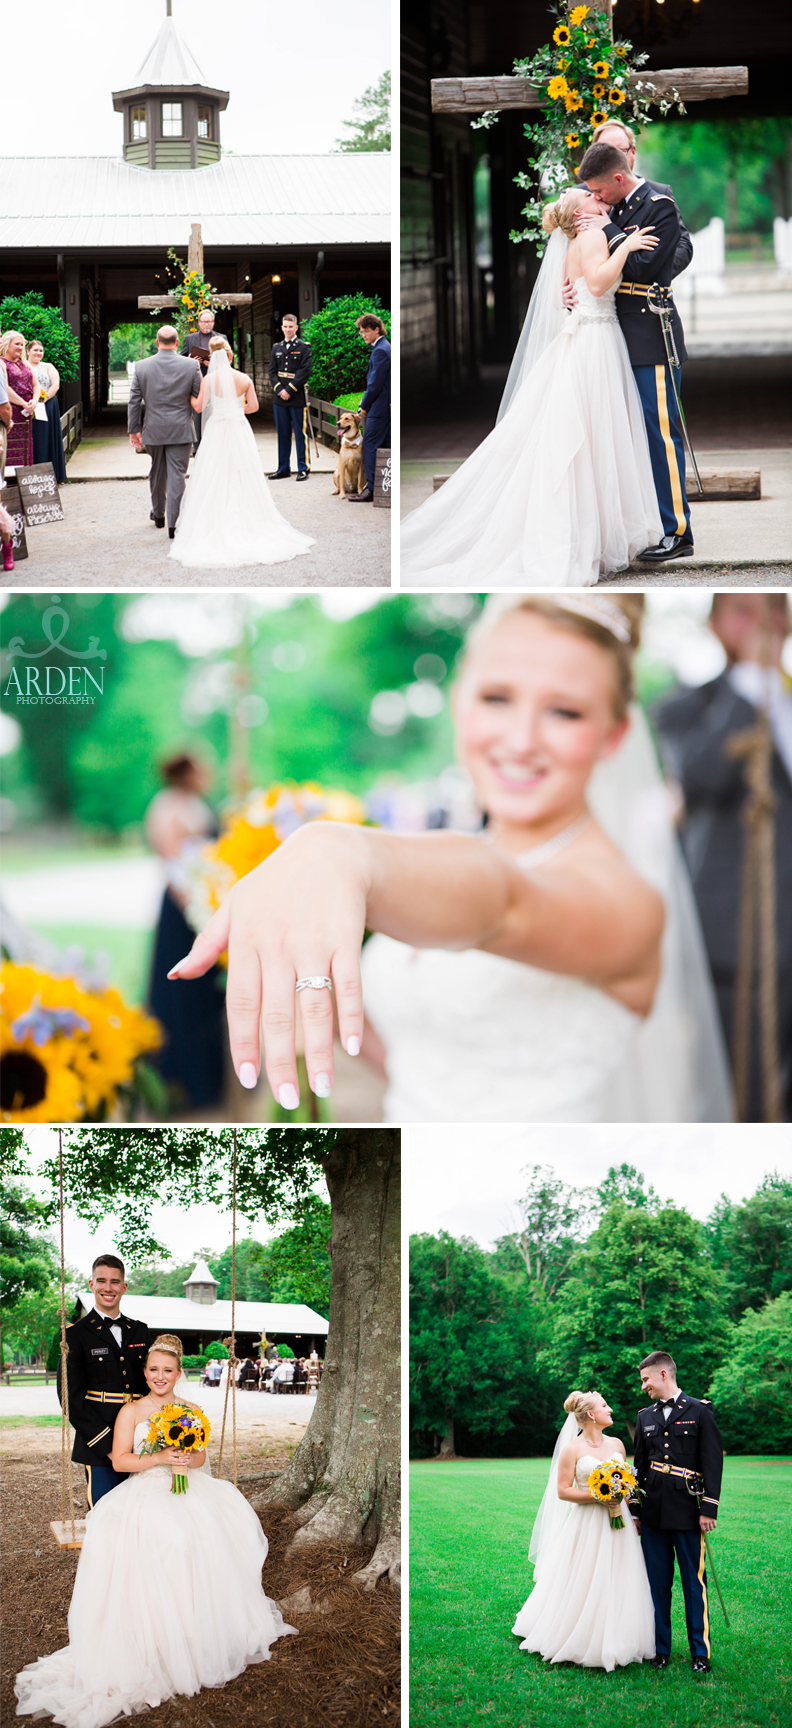 Sunflowers added a pop of color to this summer wedding!